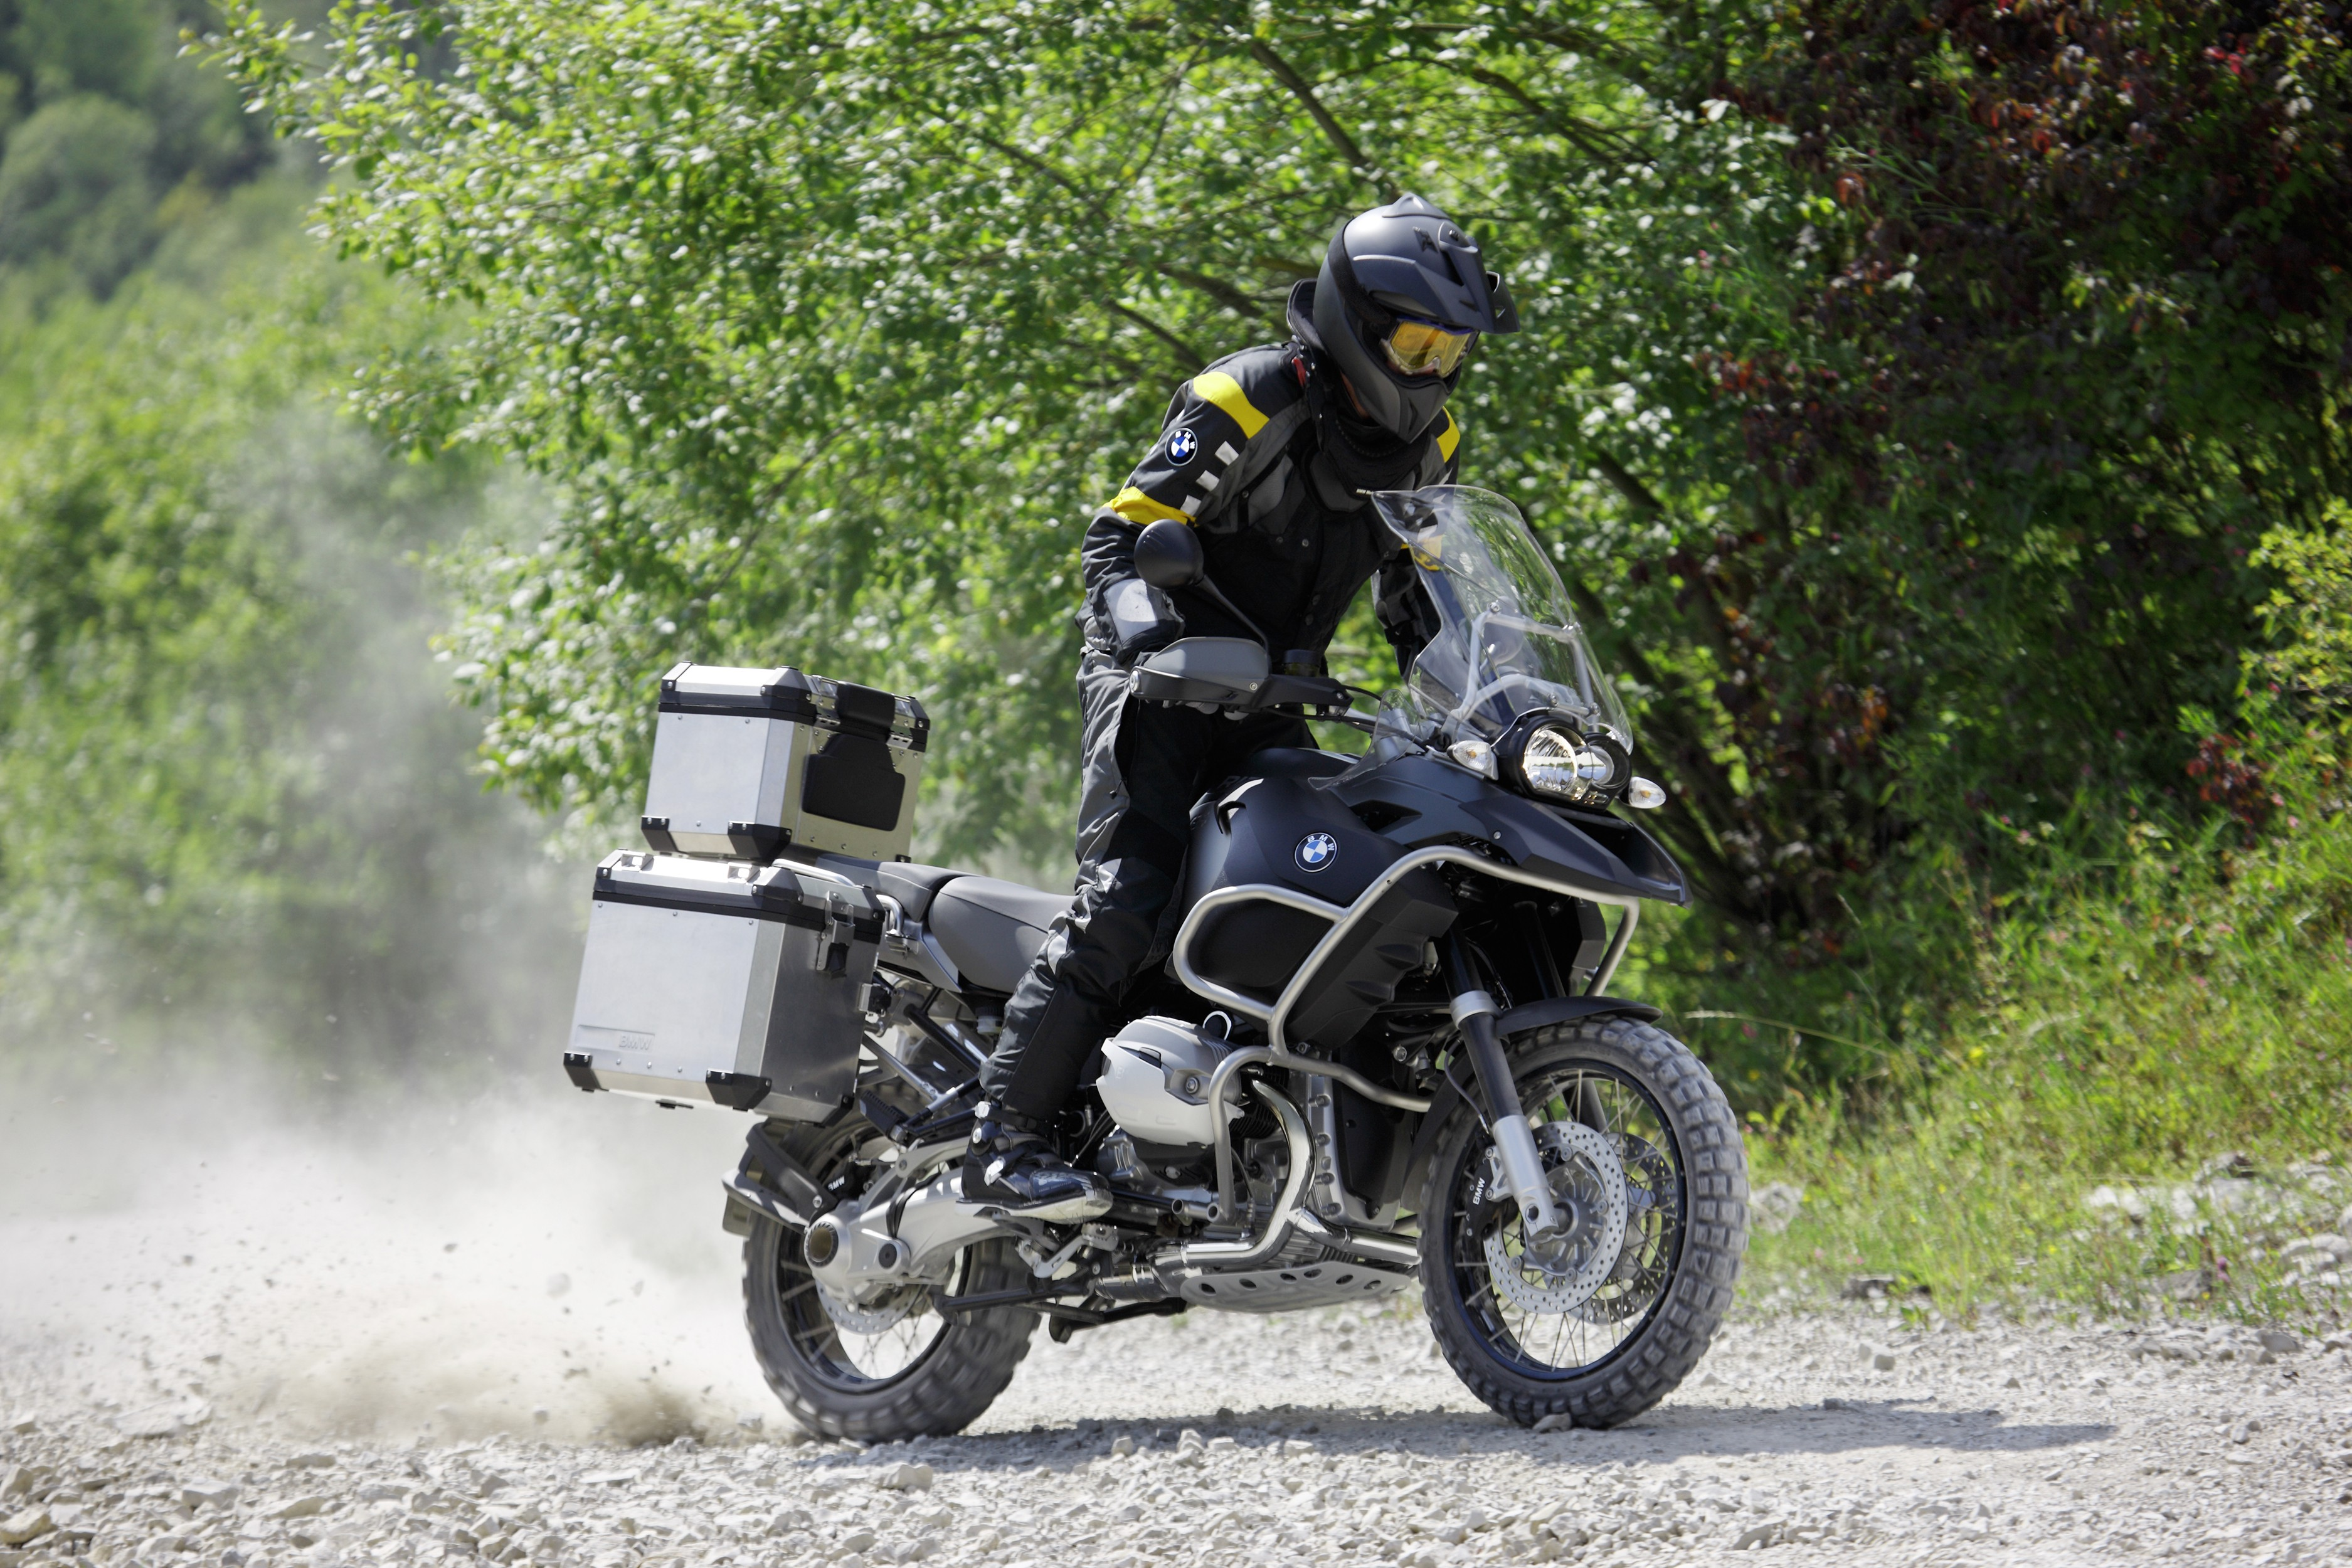 2013 BMW R1200GS Gallery 486654 | Top Speed